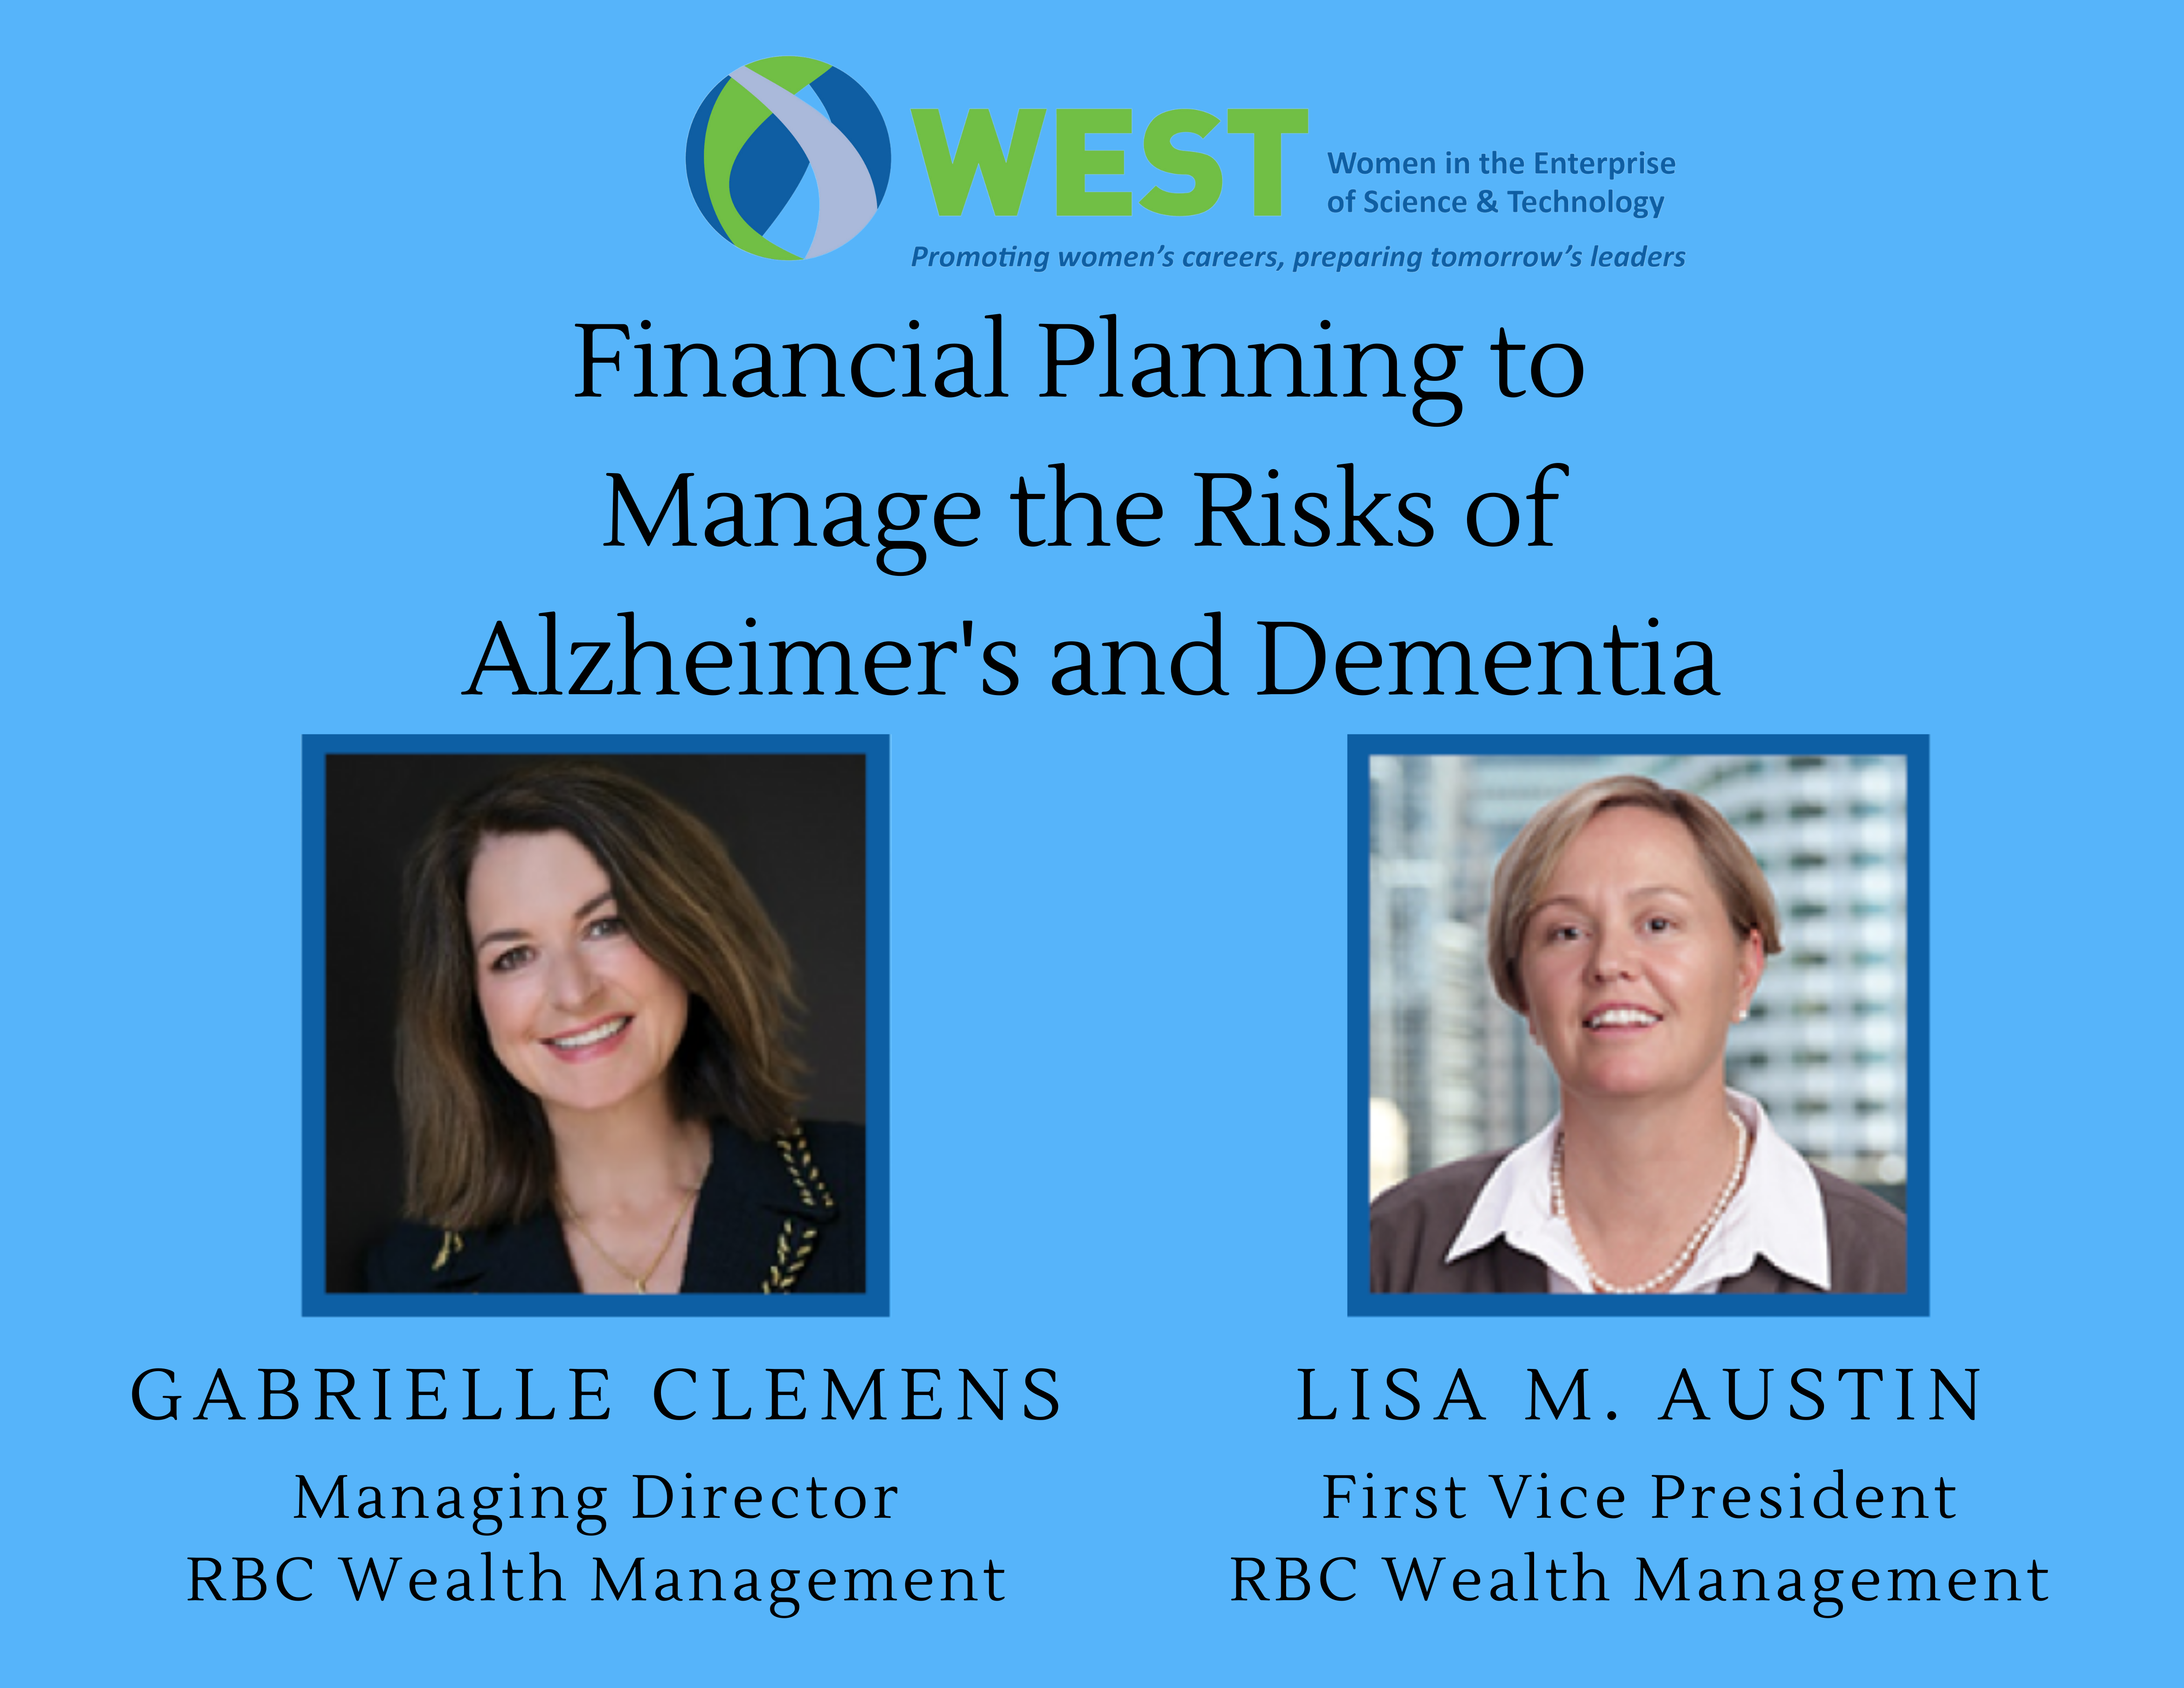 Financial Planning For Risks of Alzheimers and dementia (2)